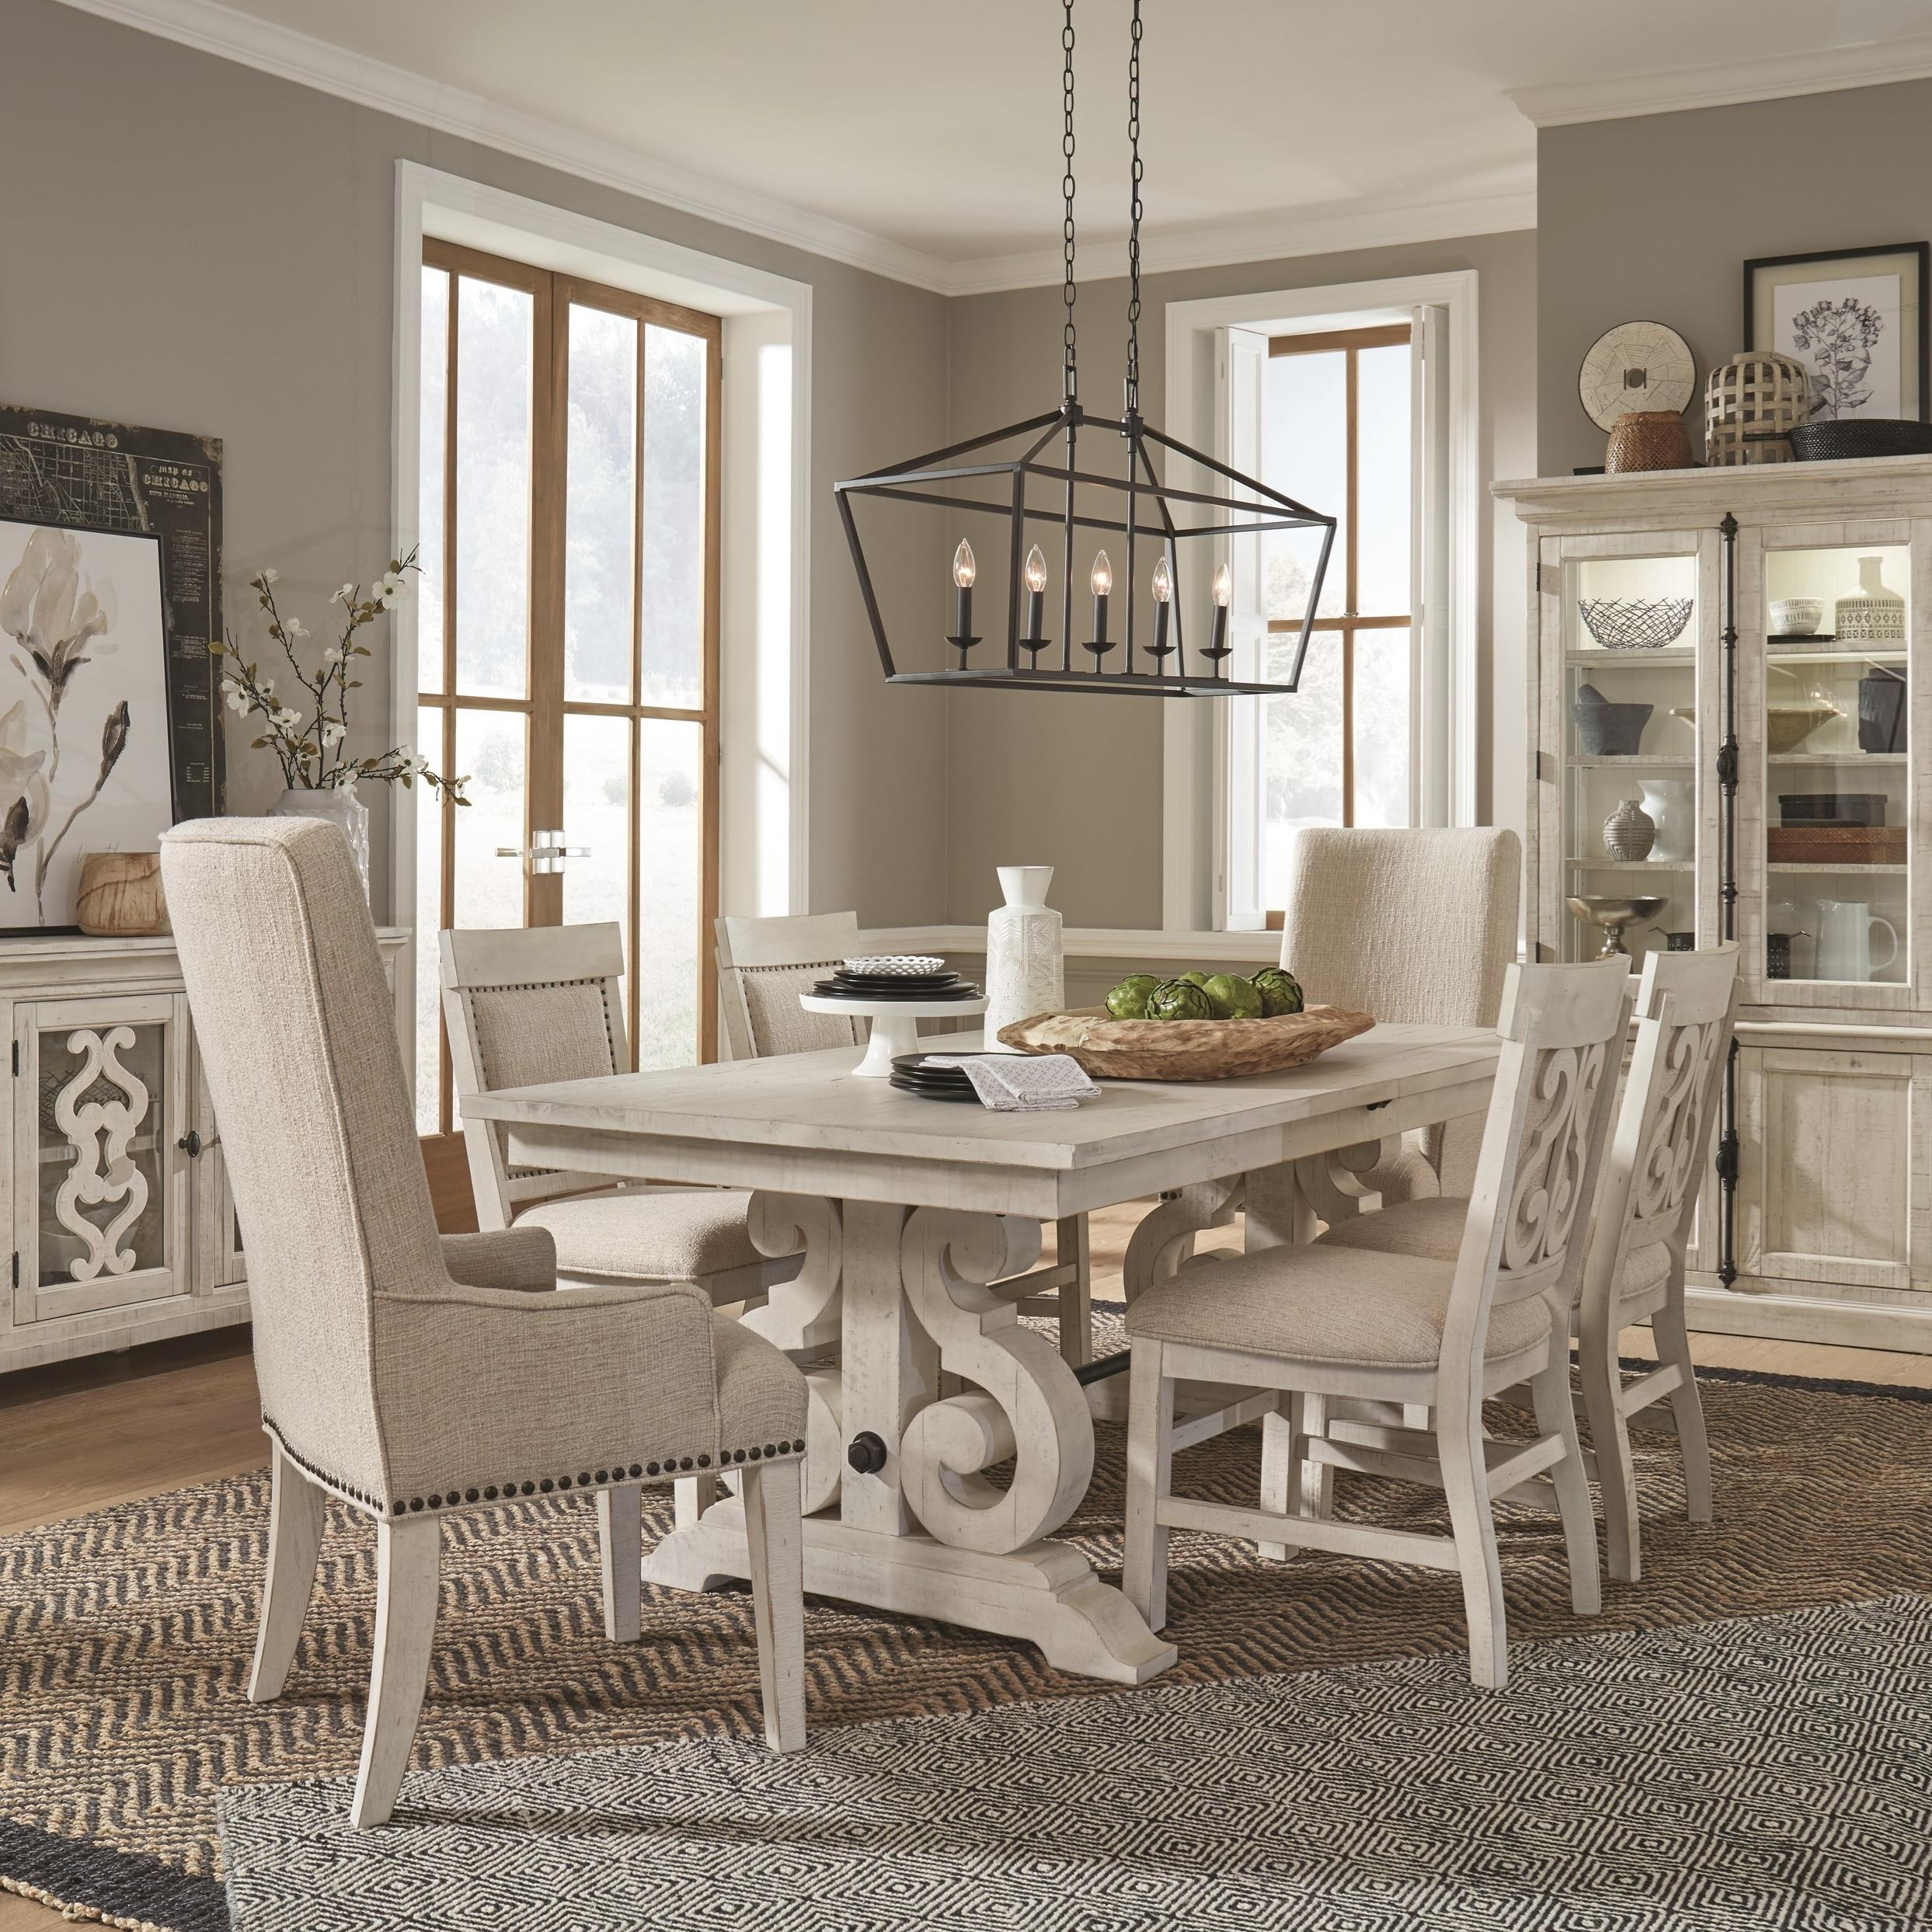 Magnussen Home Bronwyn 7 Piece Farmhouse Dining Table Set With Arm Chairs Value City Furniture Dining 7 Or More Piece Sets